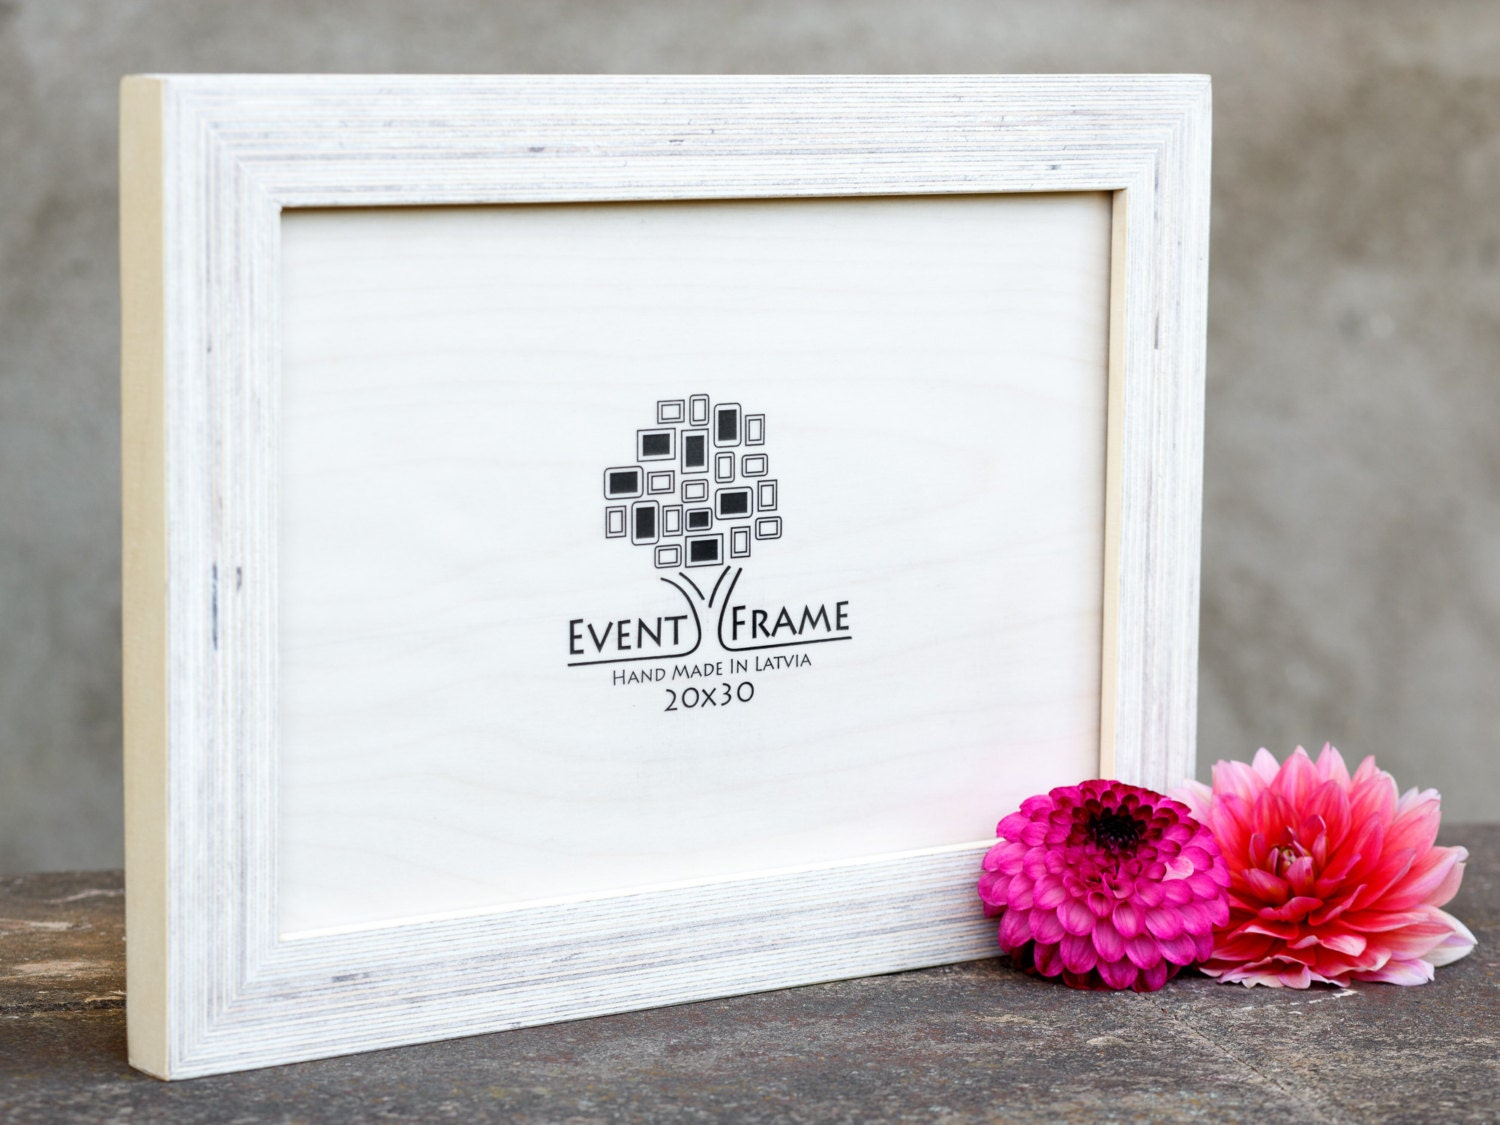 8x12 picture frame 20x30 cm unique wooden rustic design baltic birch plywood natural wood white color photo frame